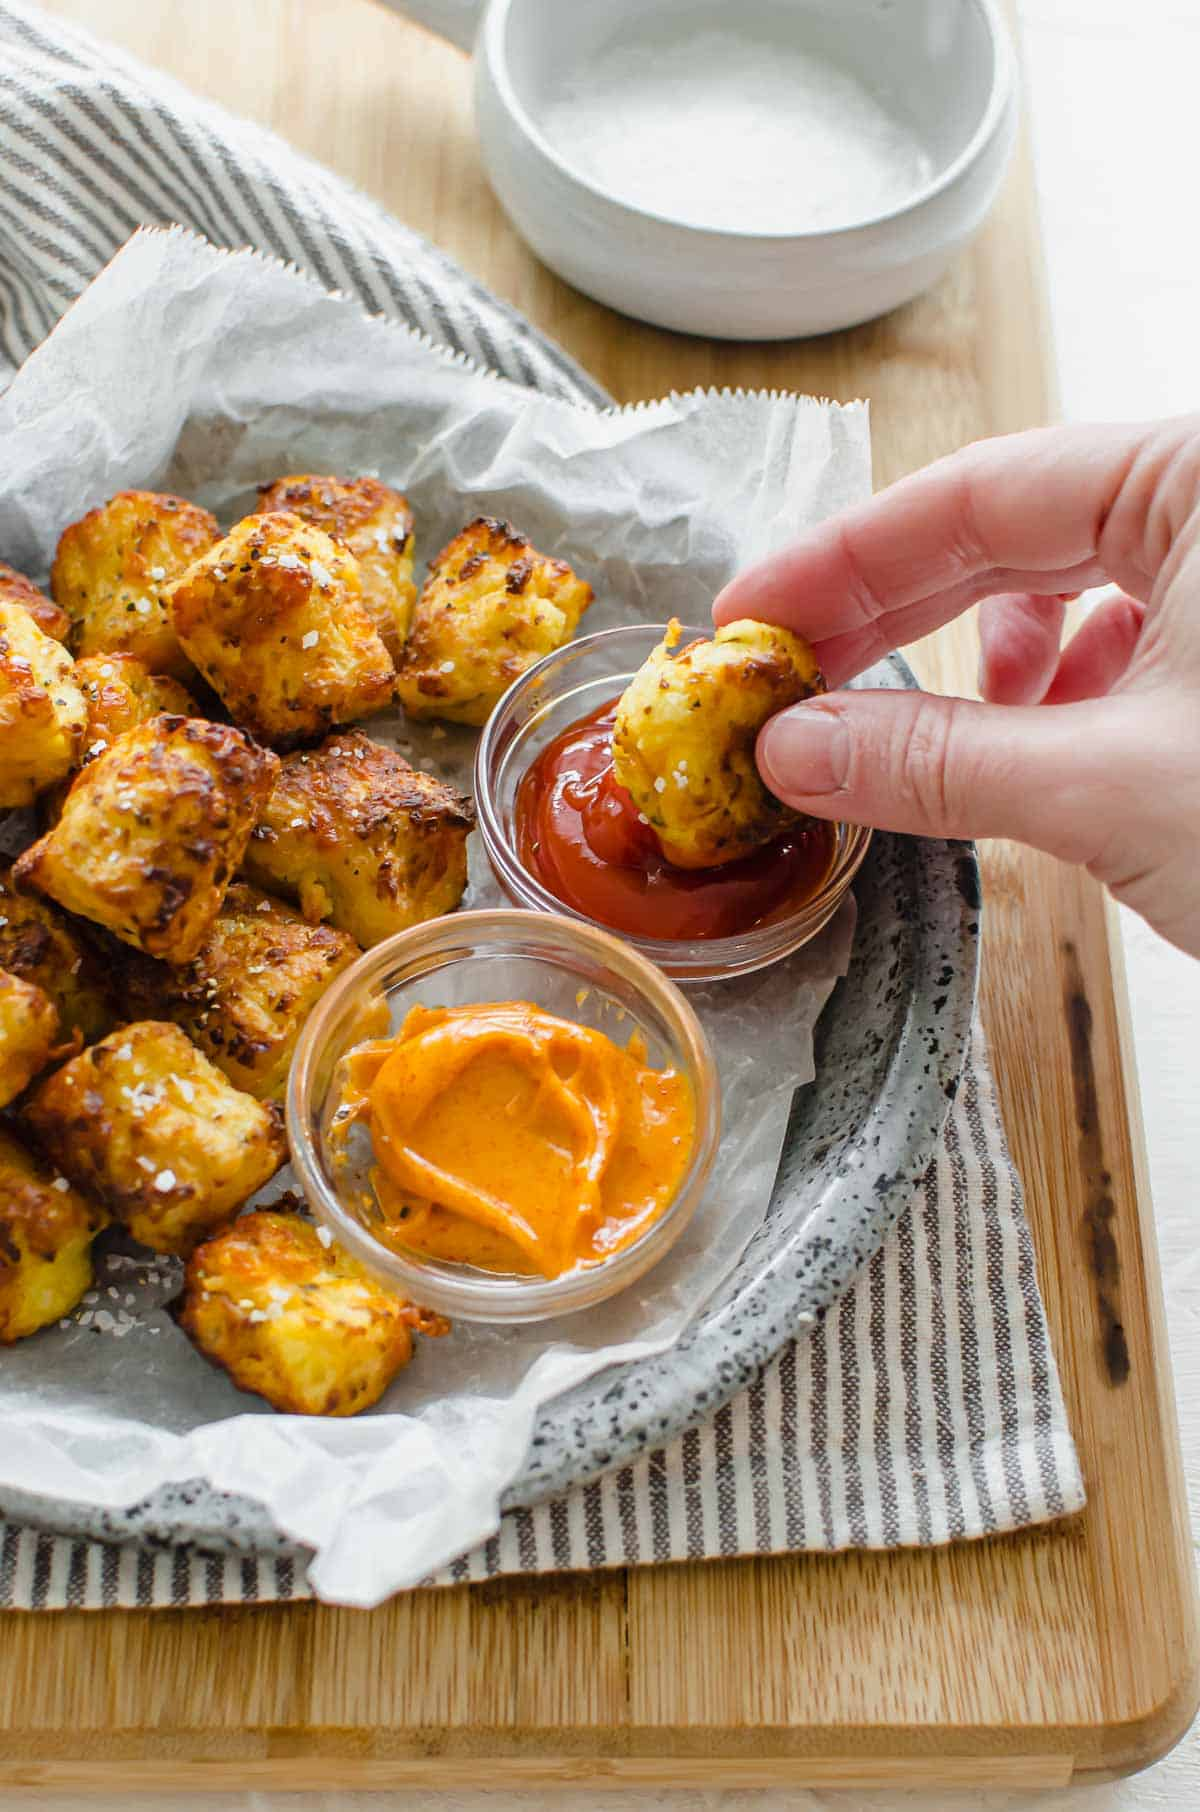 Close up of a hand dipping cauliflower tot in ketchup.